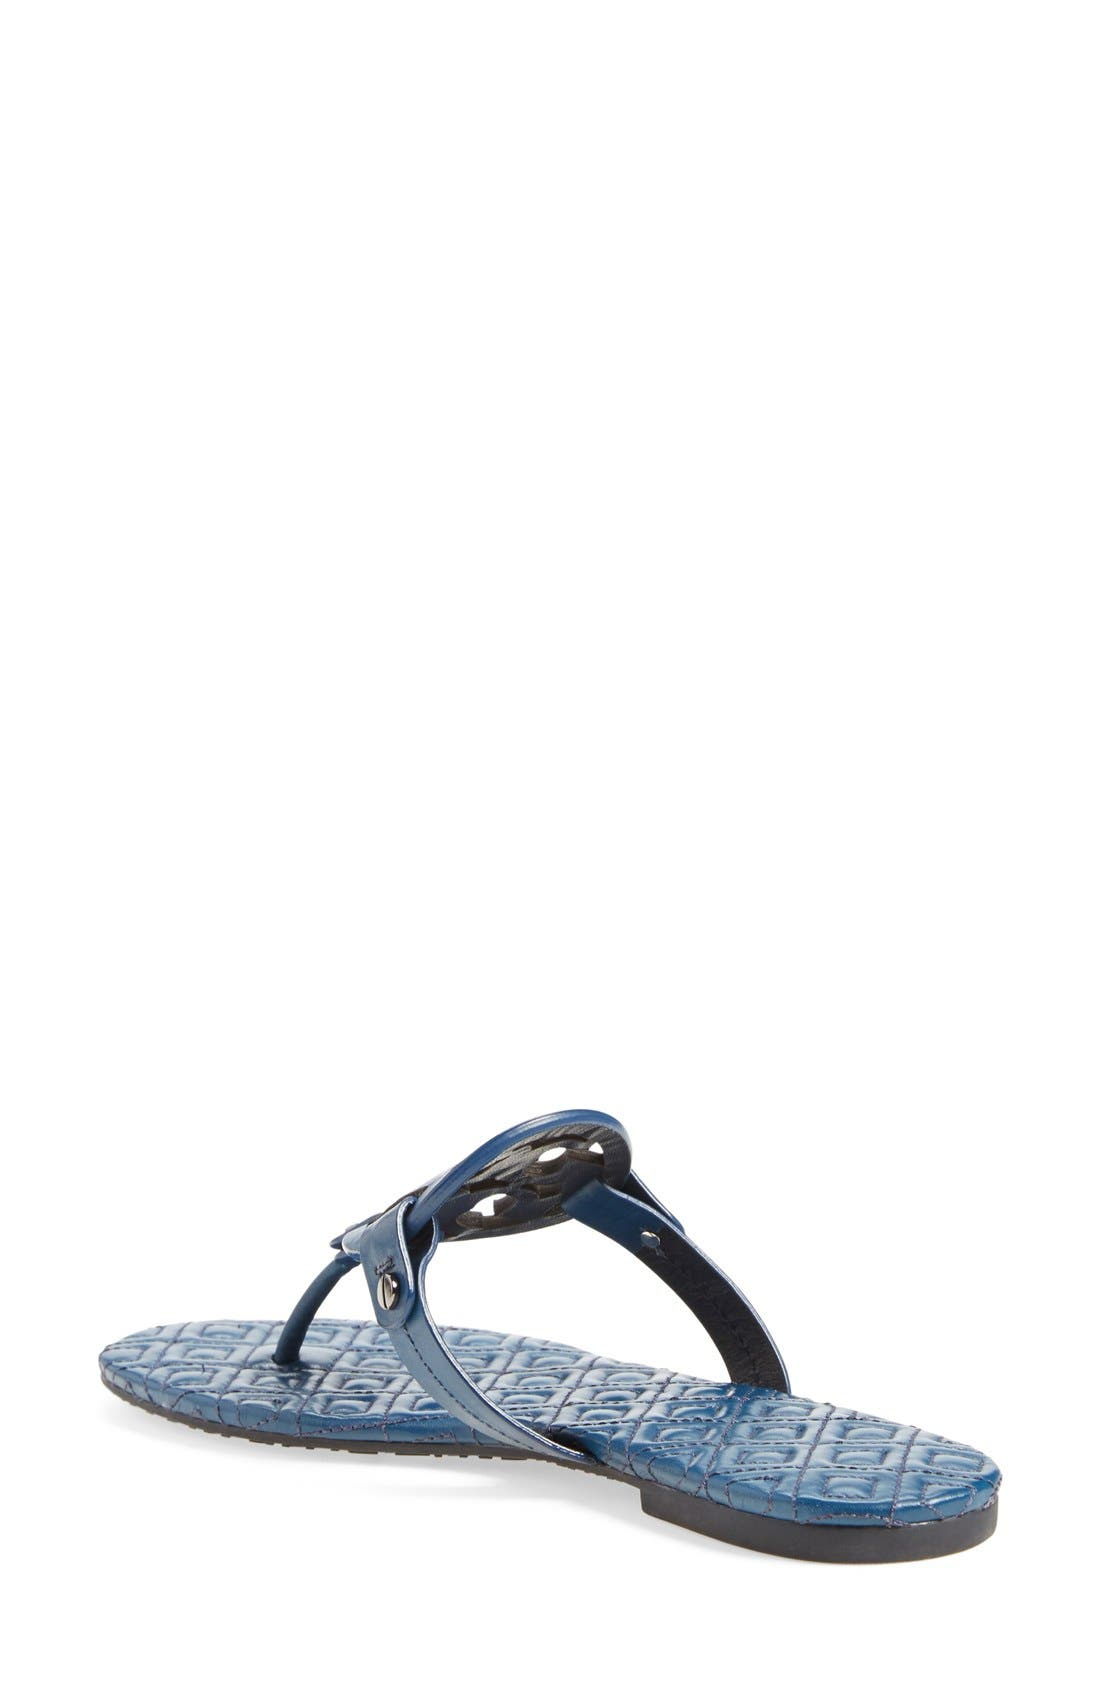 Alternate Image 2  - Tory Burch 'Miller' Quilted Sandal (Women)